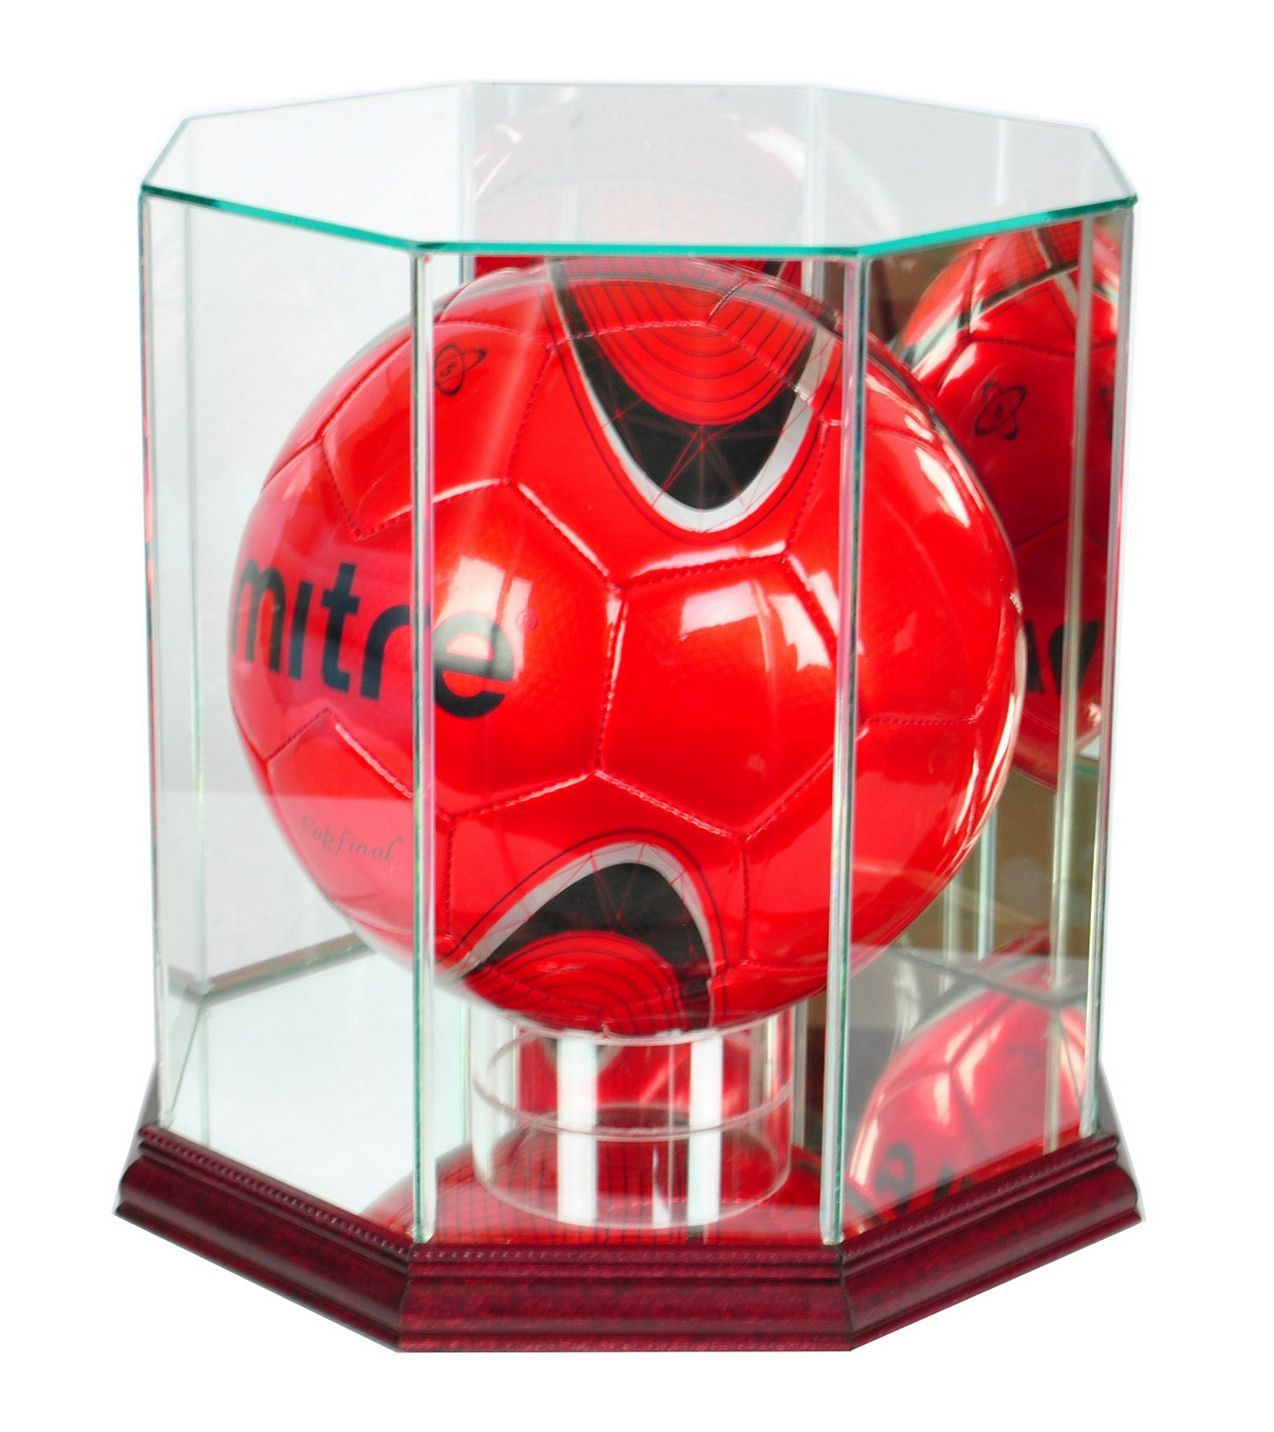 Octagon Soccer Ball Display Case With Mirrors Display Case Soccer Ball Display